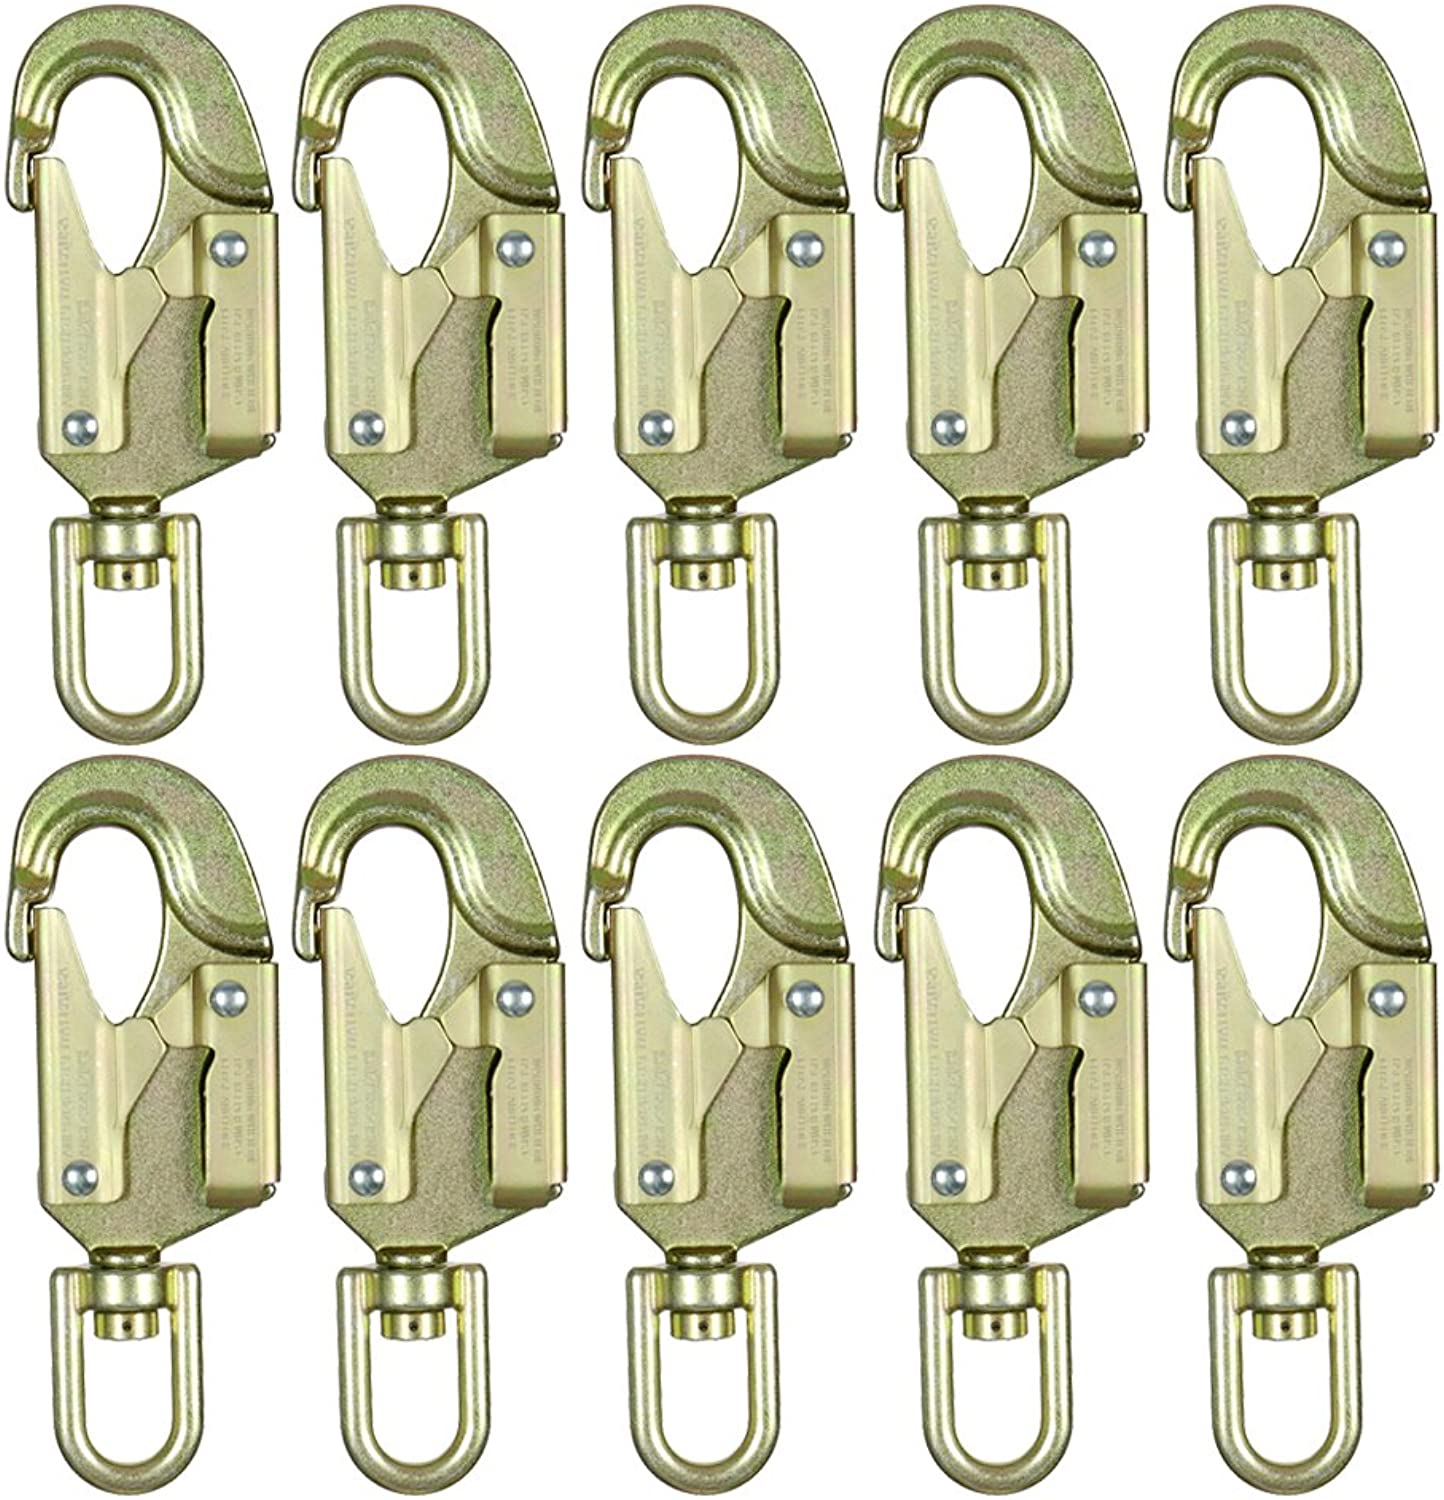 Fusion Climb Carbon Steel Drop Forged Double Locking Swivel High Strength Gate Snap Hook Carabiner 10Pack